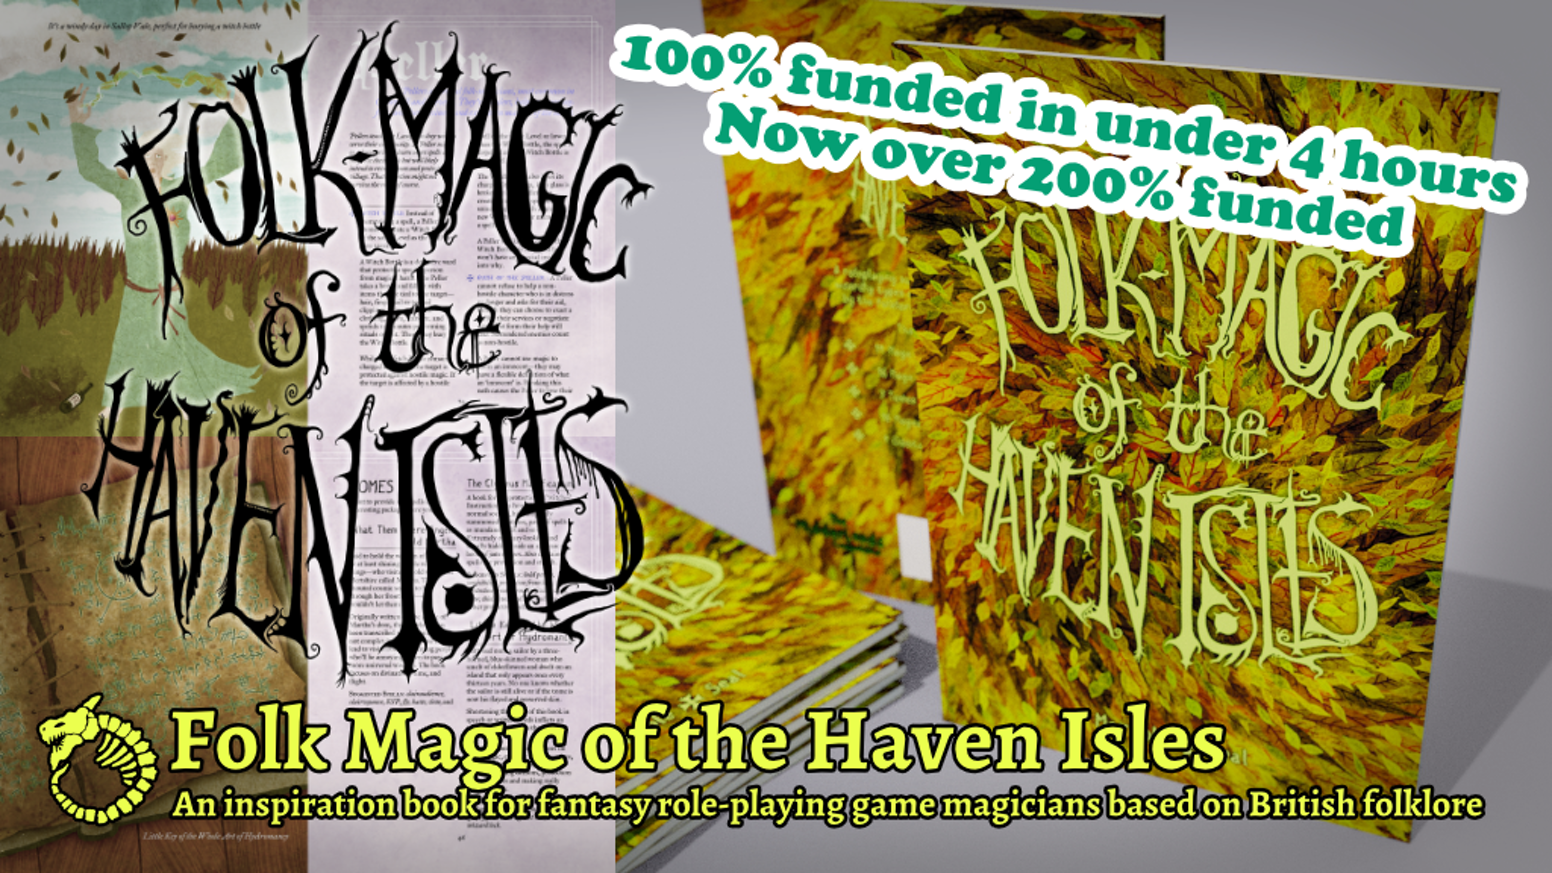 An inspiration book for fantasy role-playing game magicians based on British folklore